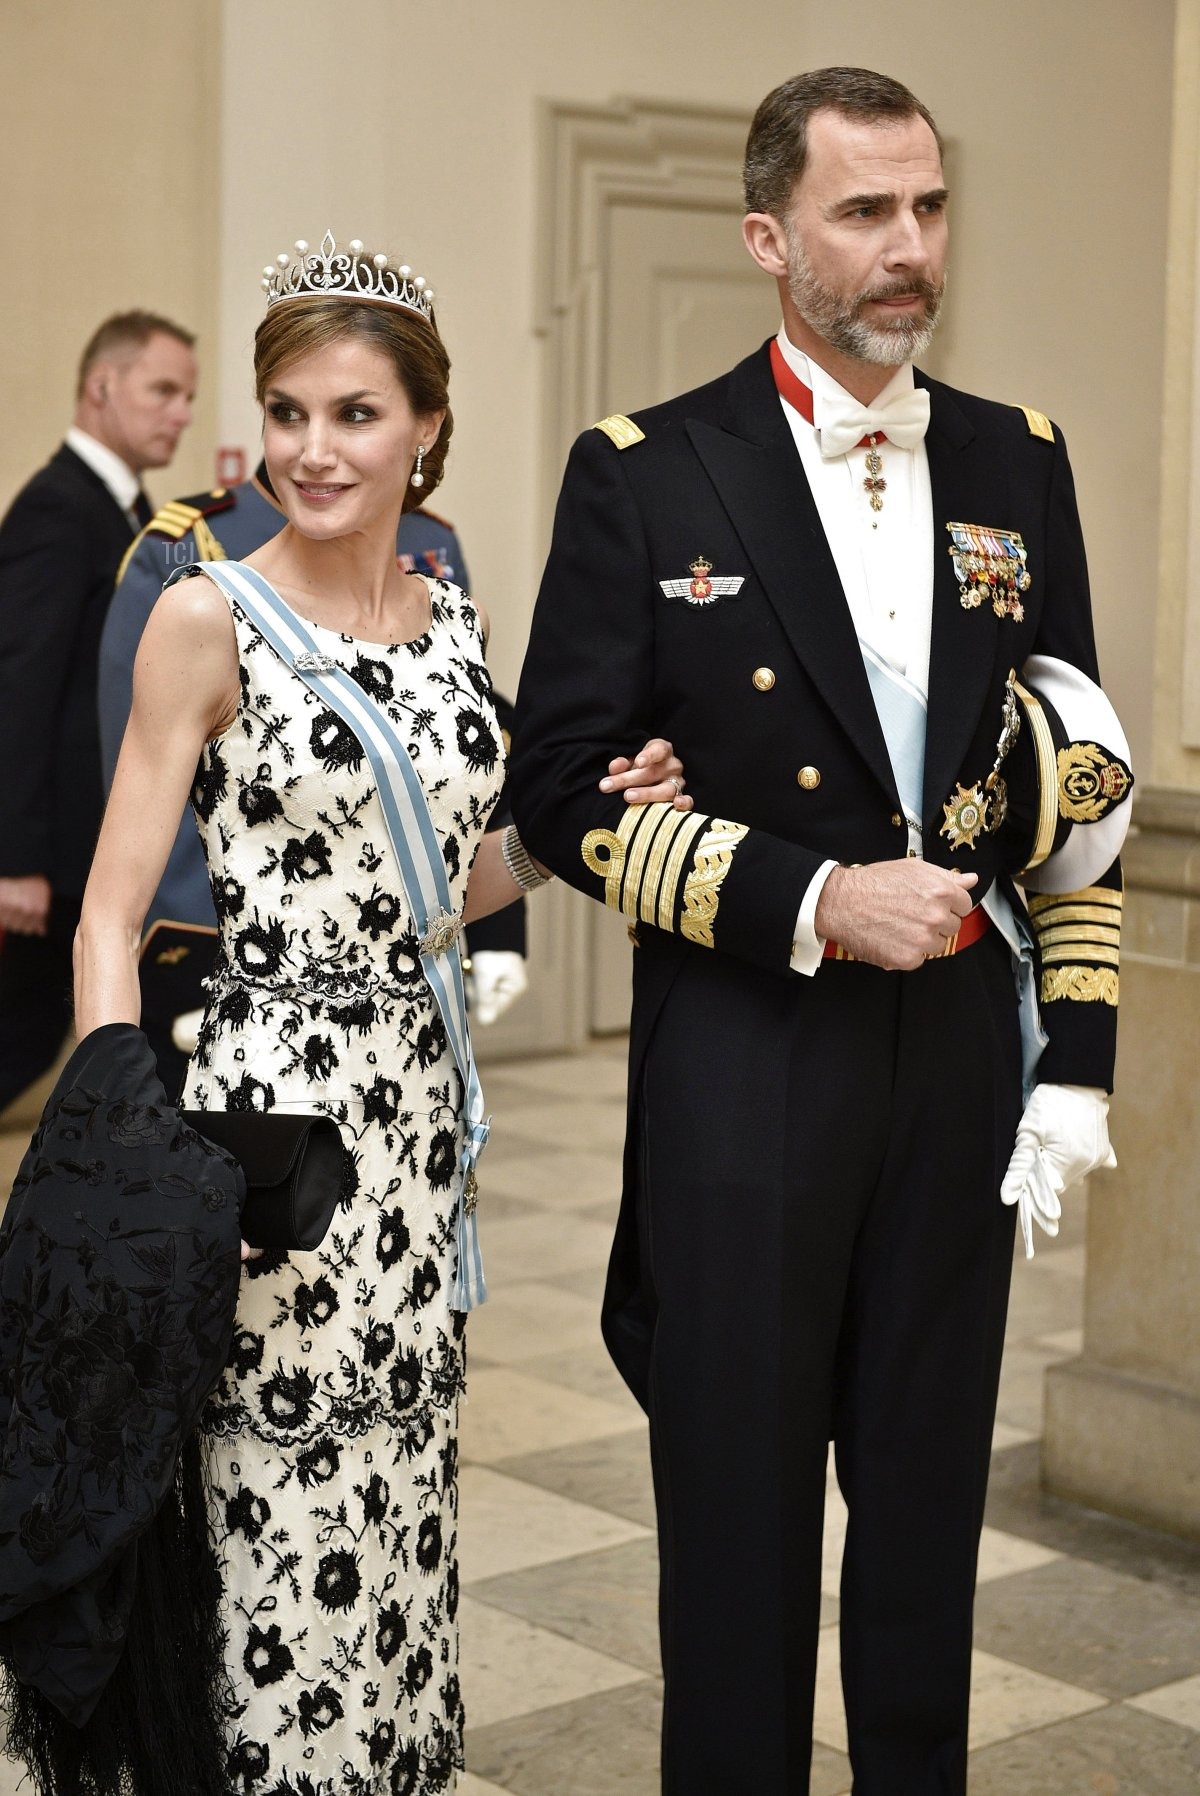 Spains King Felipe and his wife Letizia arrive for Denmark's Queen Margrethe's 75th birthday dinner at Christiansborg Palace on April 15, 2015